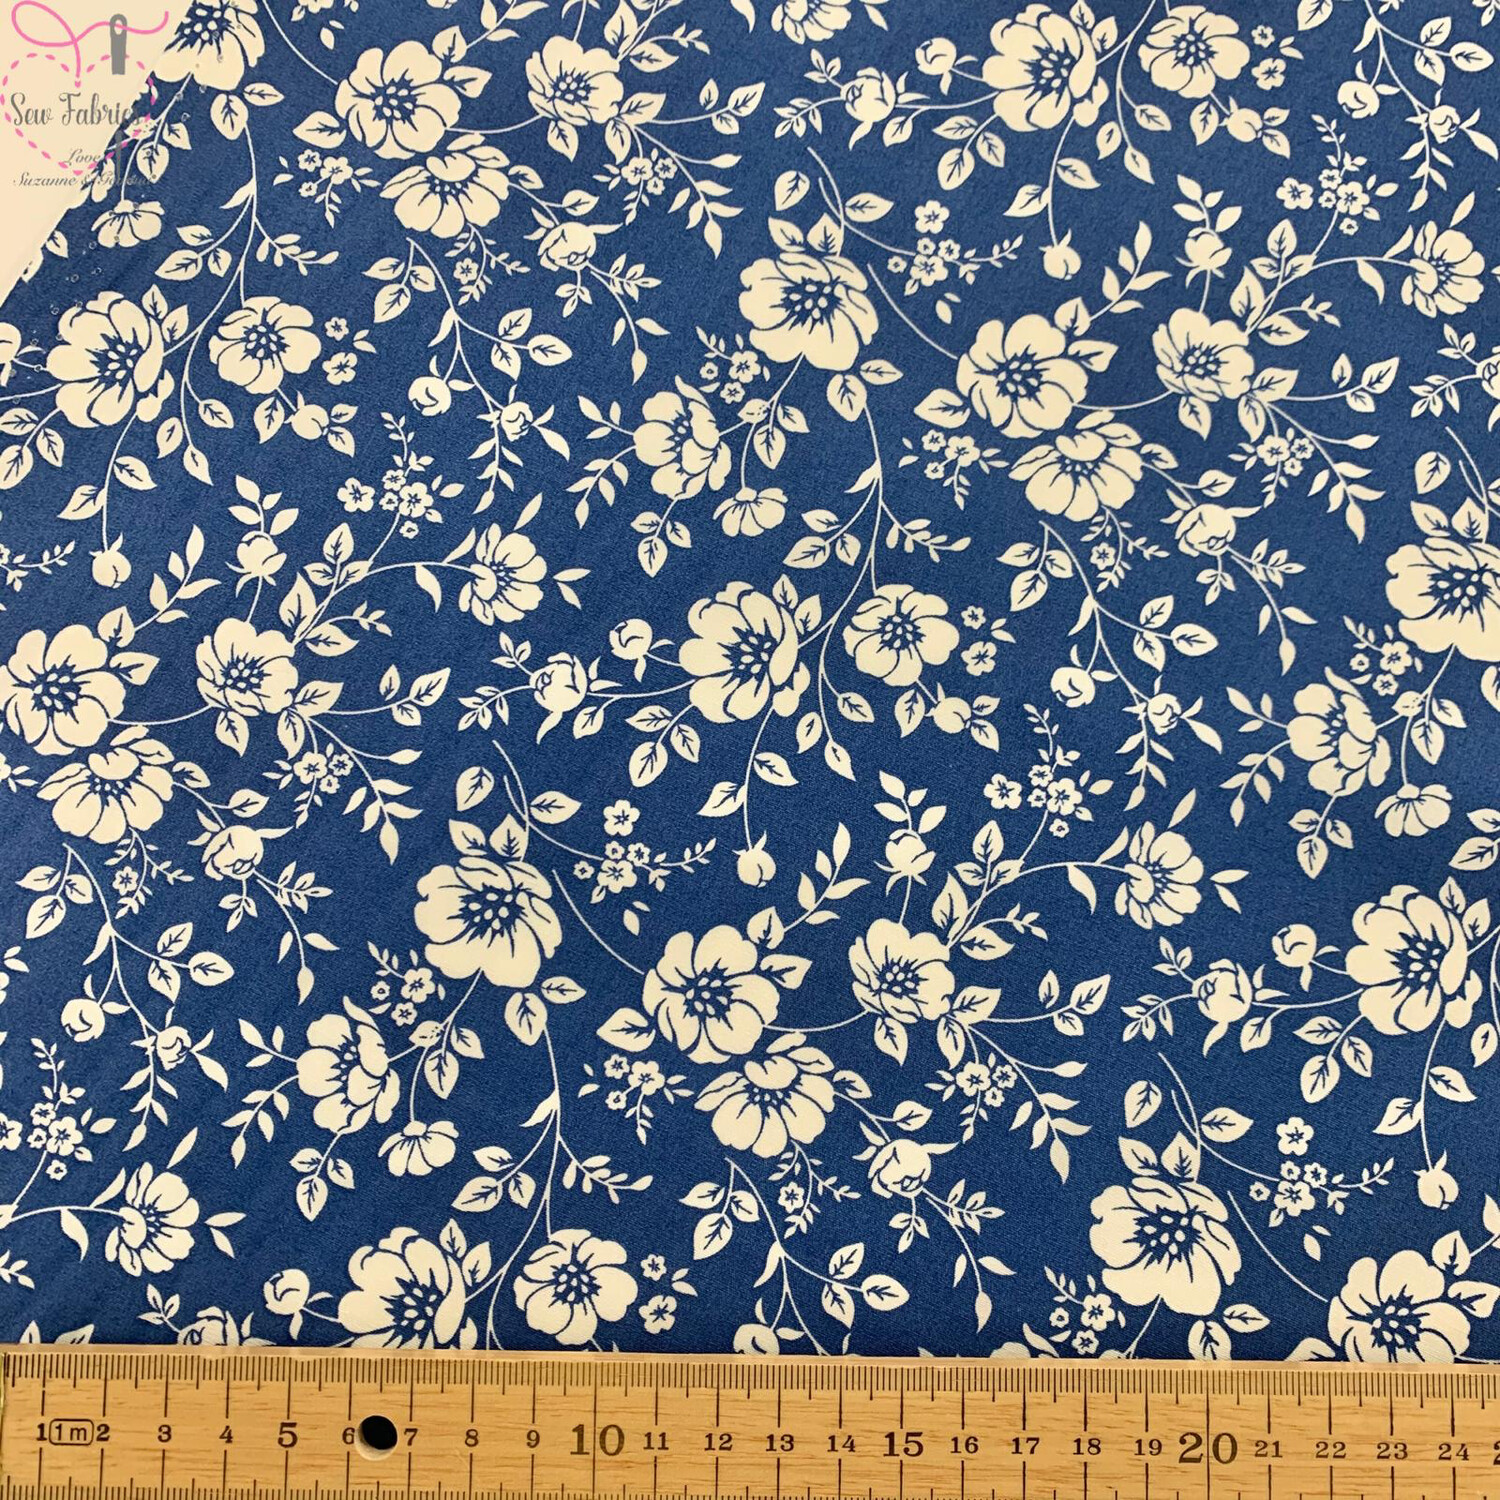 Rose & Hubble Copen Blue Ivory Bold Floral Fabric, 100% Cotton Poplin Material